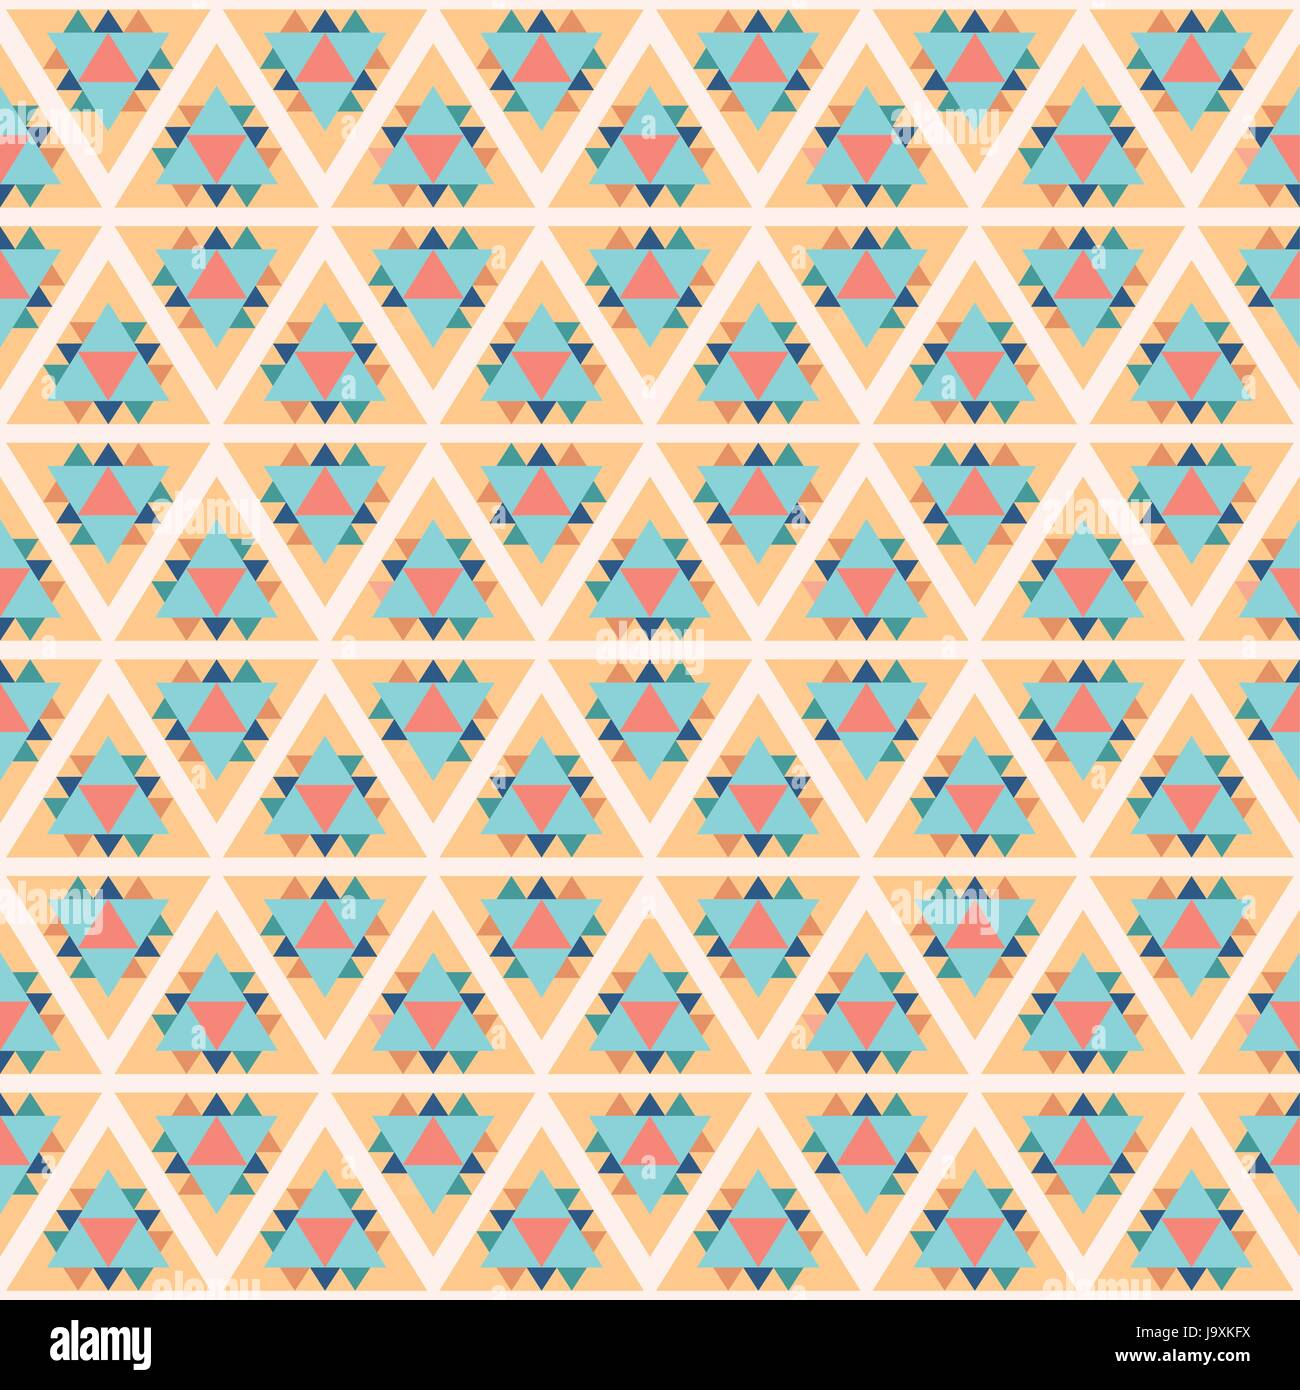 Ethnic Boho Seamless Patterns Abstract Vintage Ornament